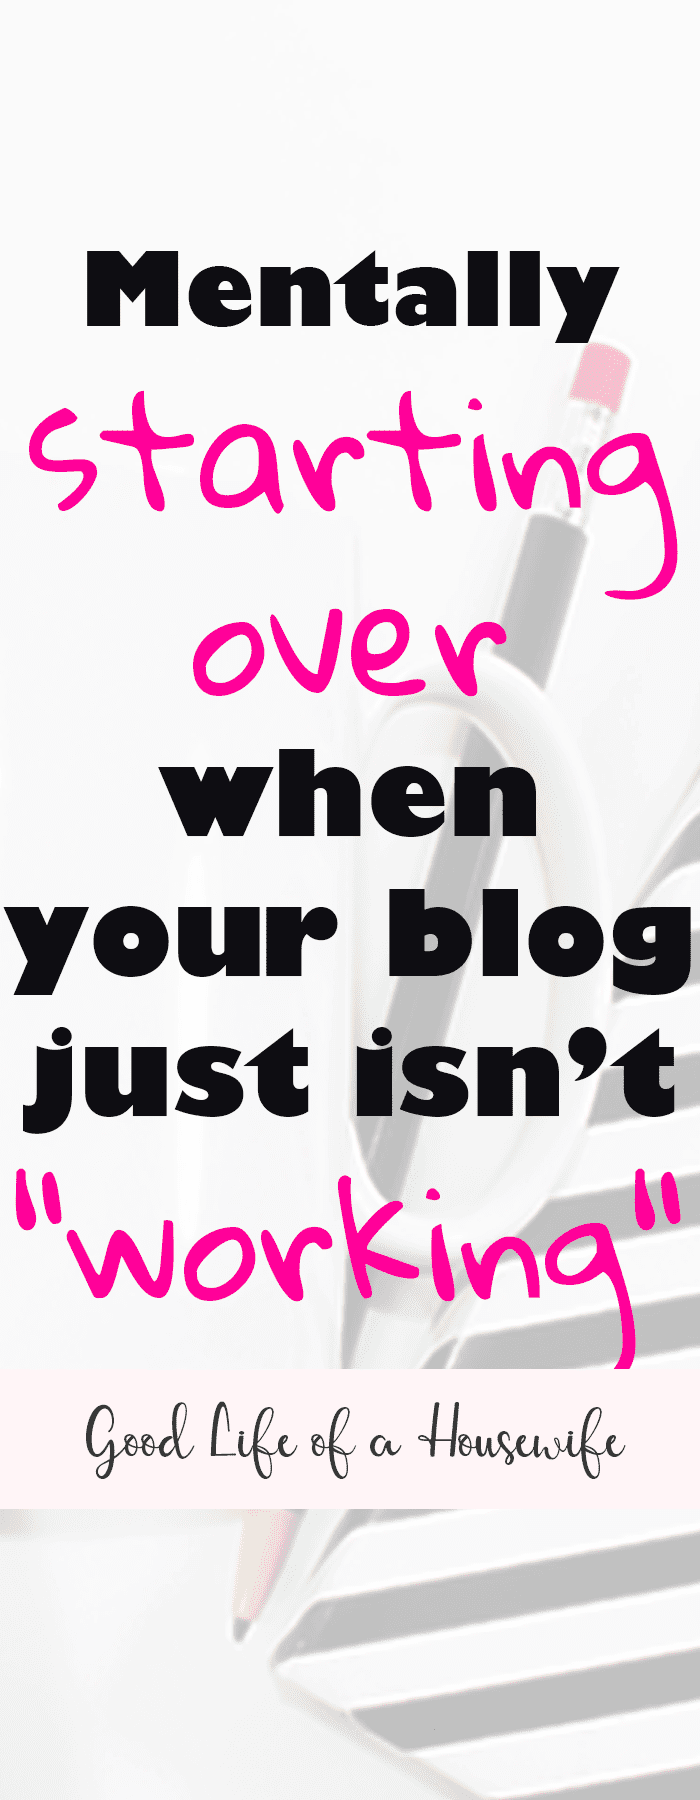 It's so easy to get blogger overwhelm. Especially when you poor your heart and time into your blog and it's a big flop. Sometimes you just need to a do-over. Here is what I did when I decided to mentally start over with my blog.